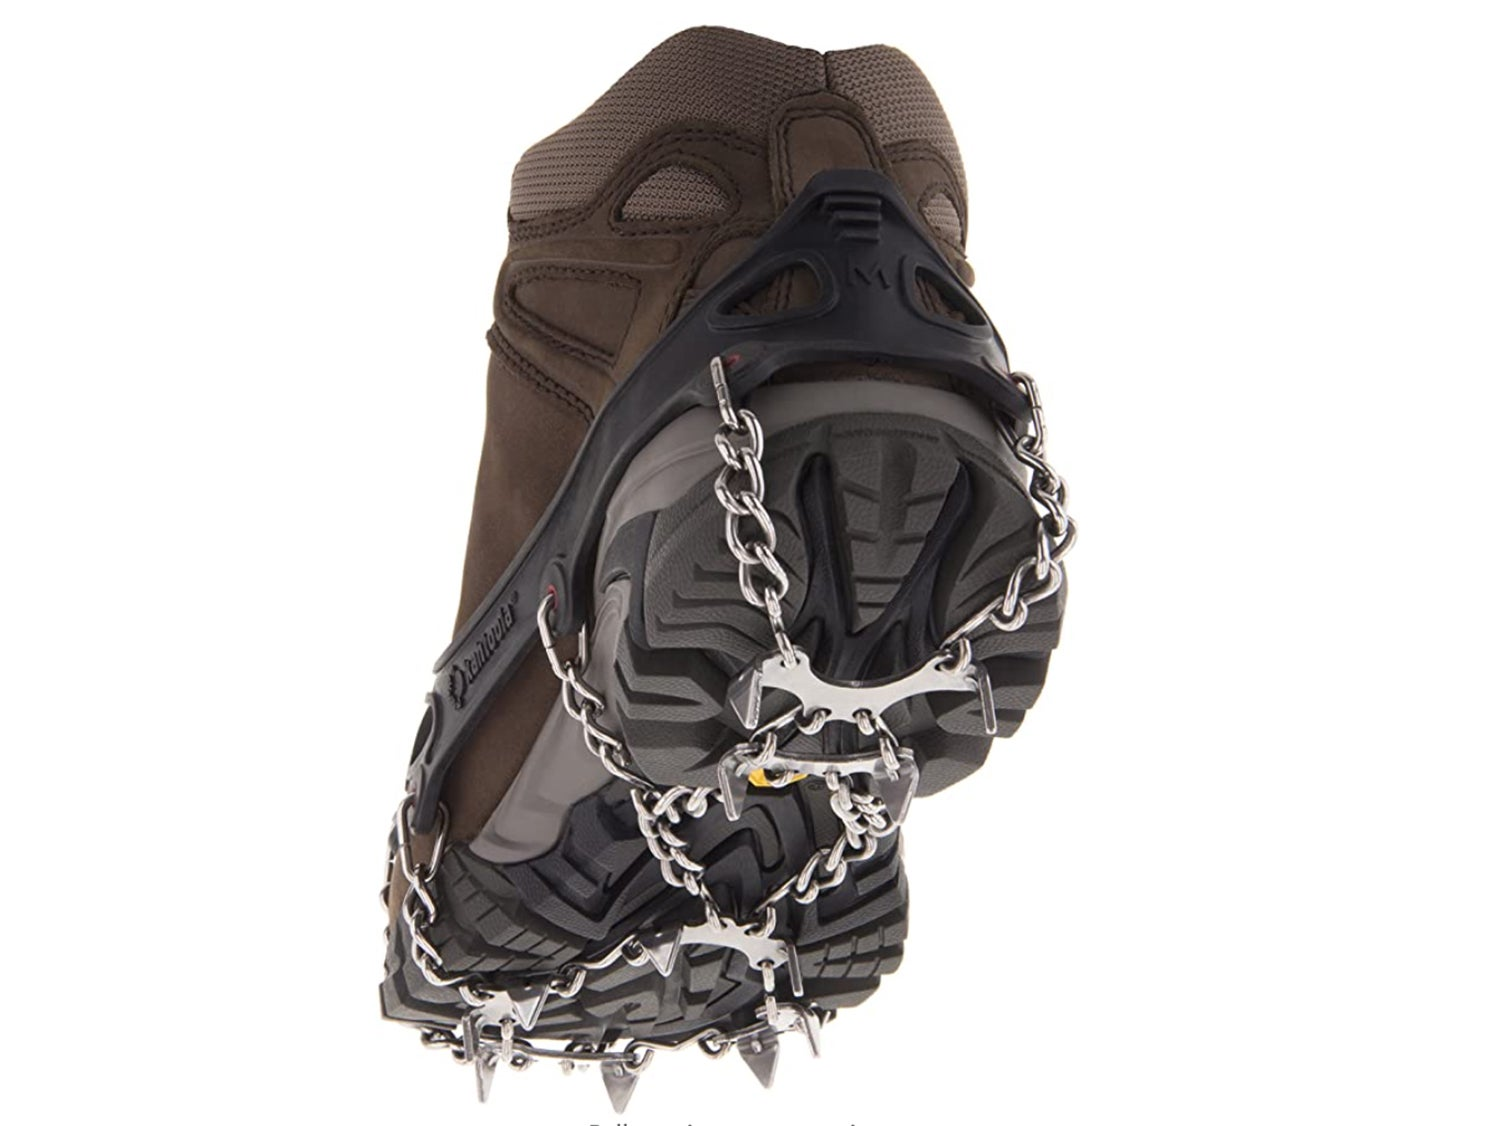 A boot equipped with spikes and chains for grip.